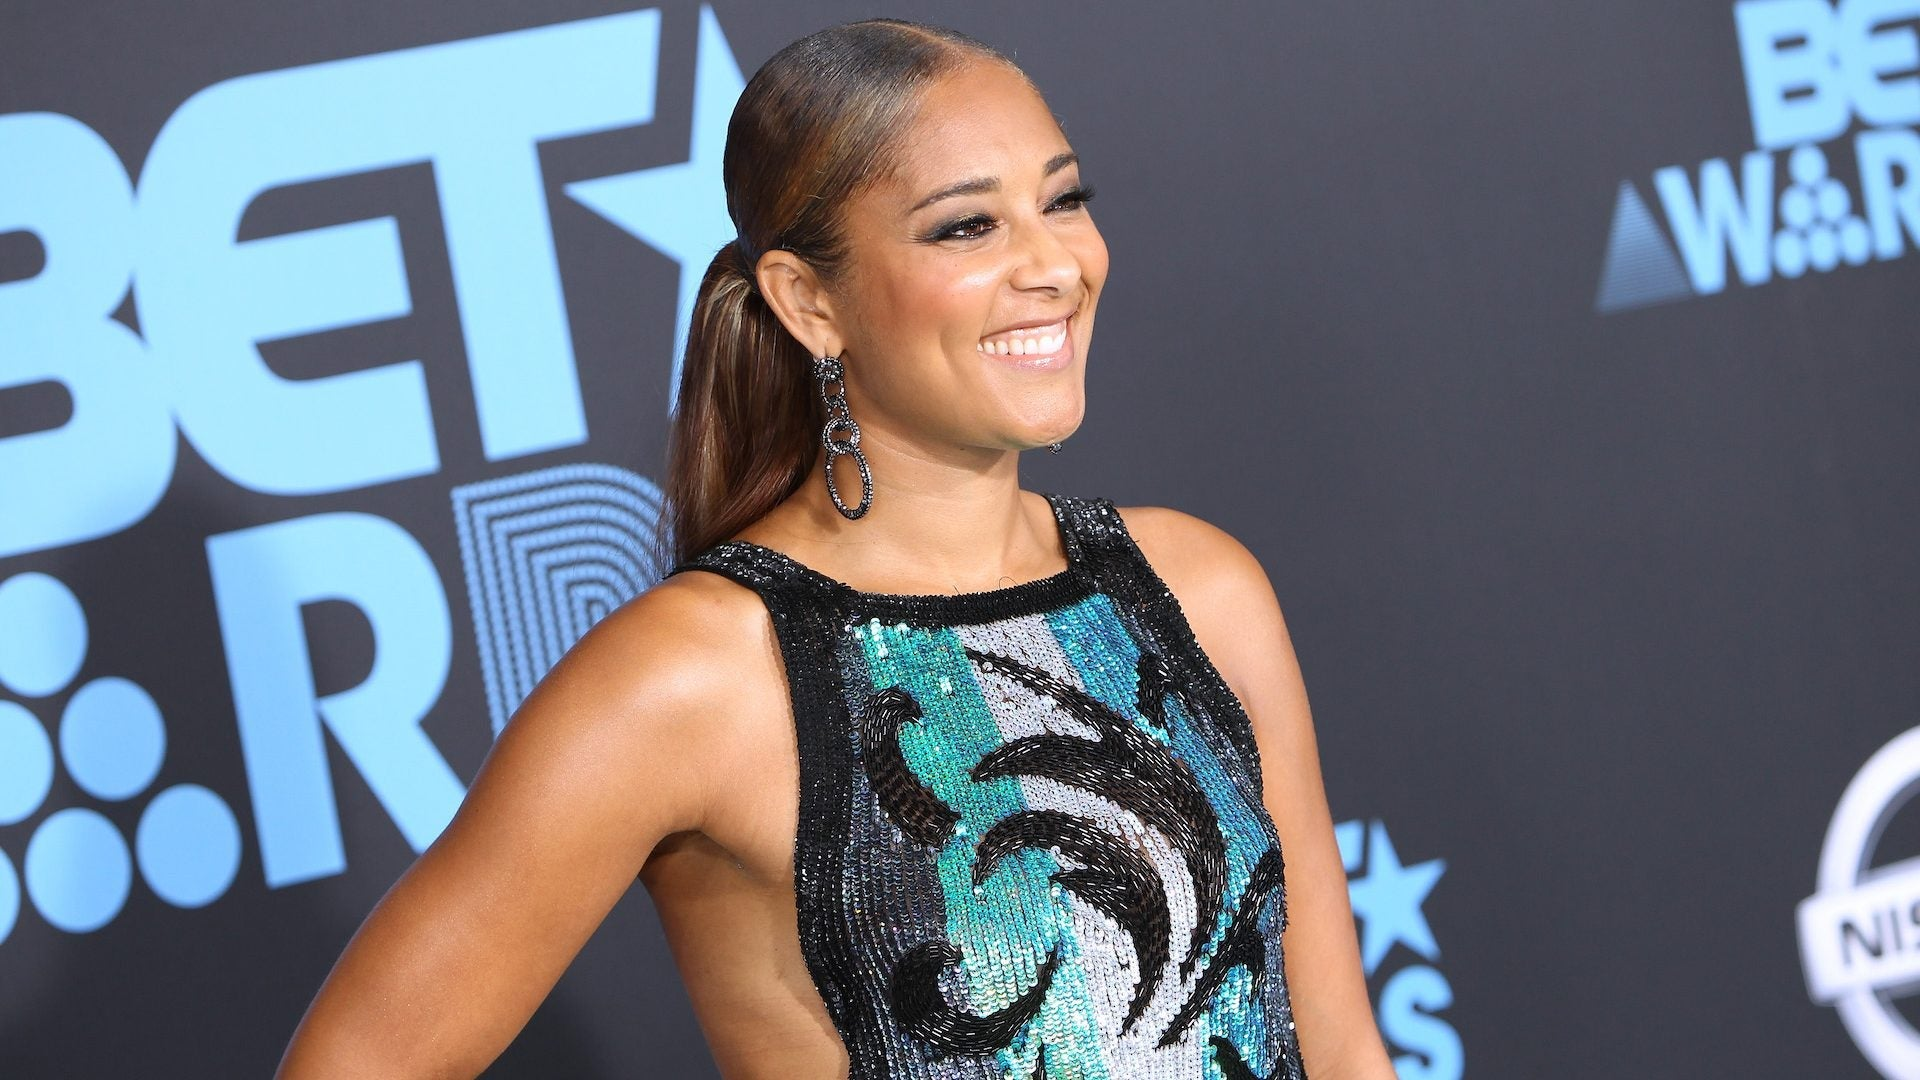 Amanda Seales On Hosting BET Awards: I'm 'Not Trying To Have Black Twitter Come For Me'